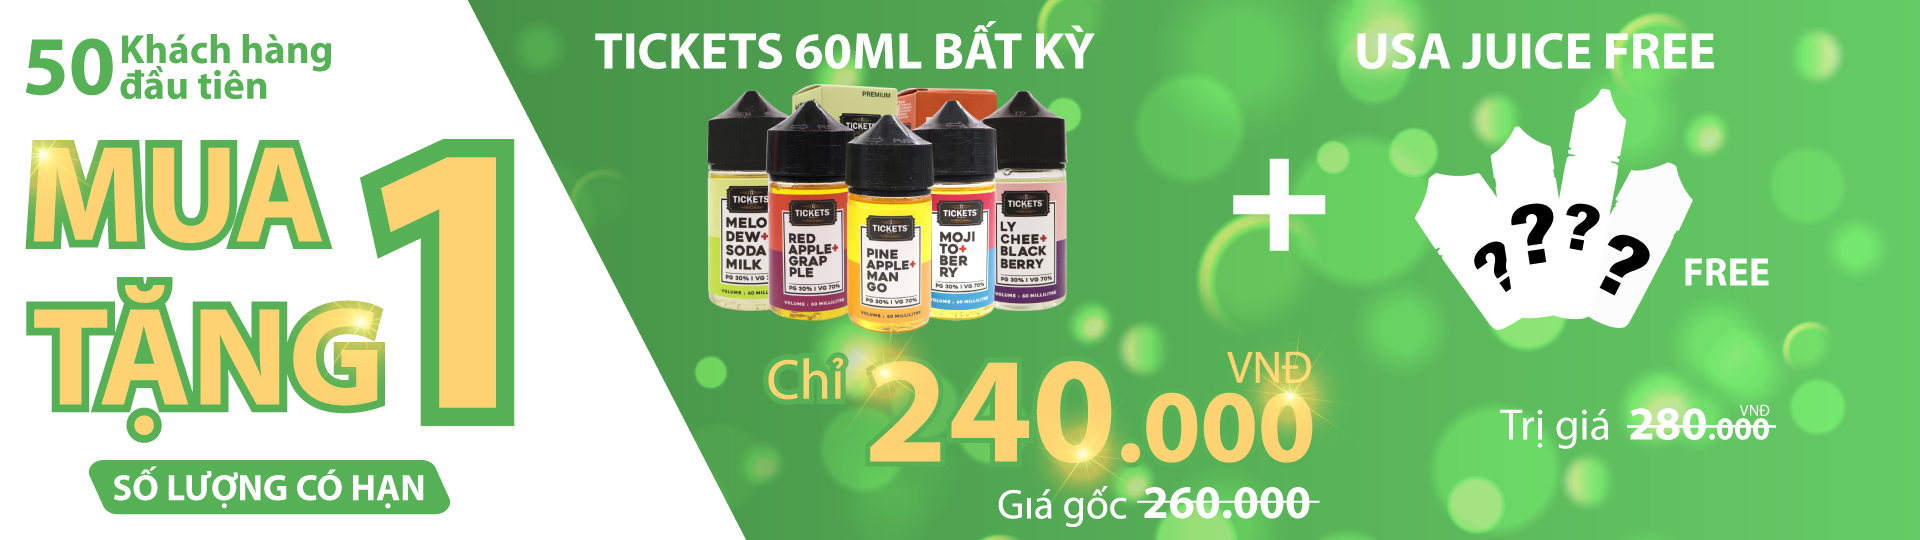 mua-tinh-dau-vape-malay-tickets-tang-juice-my-free